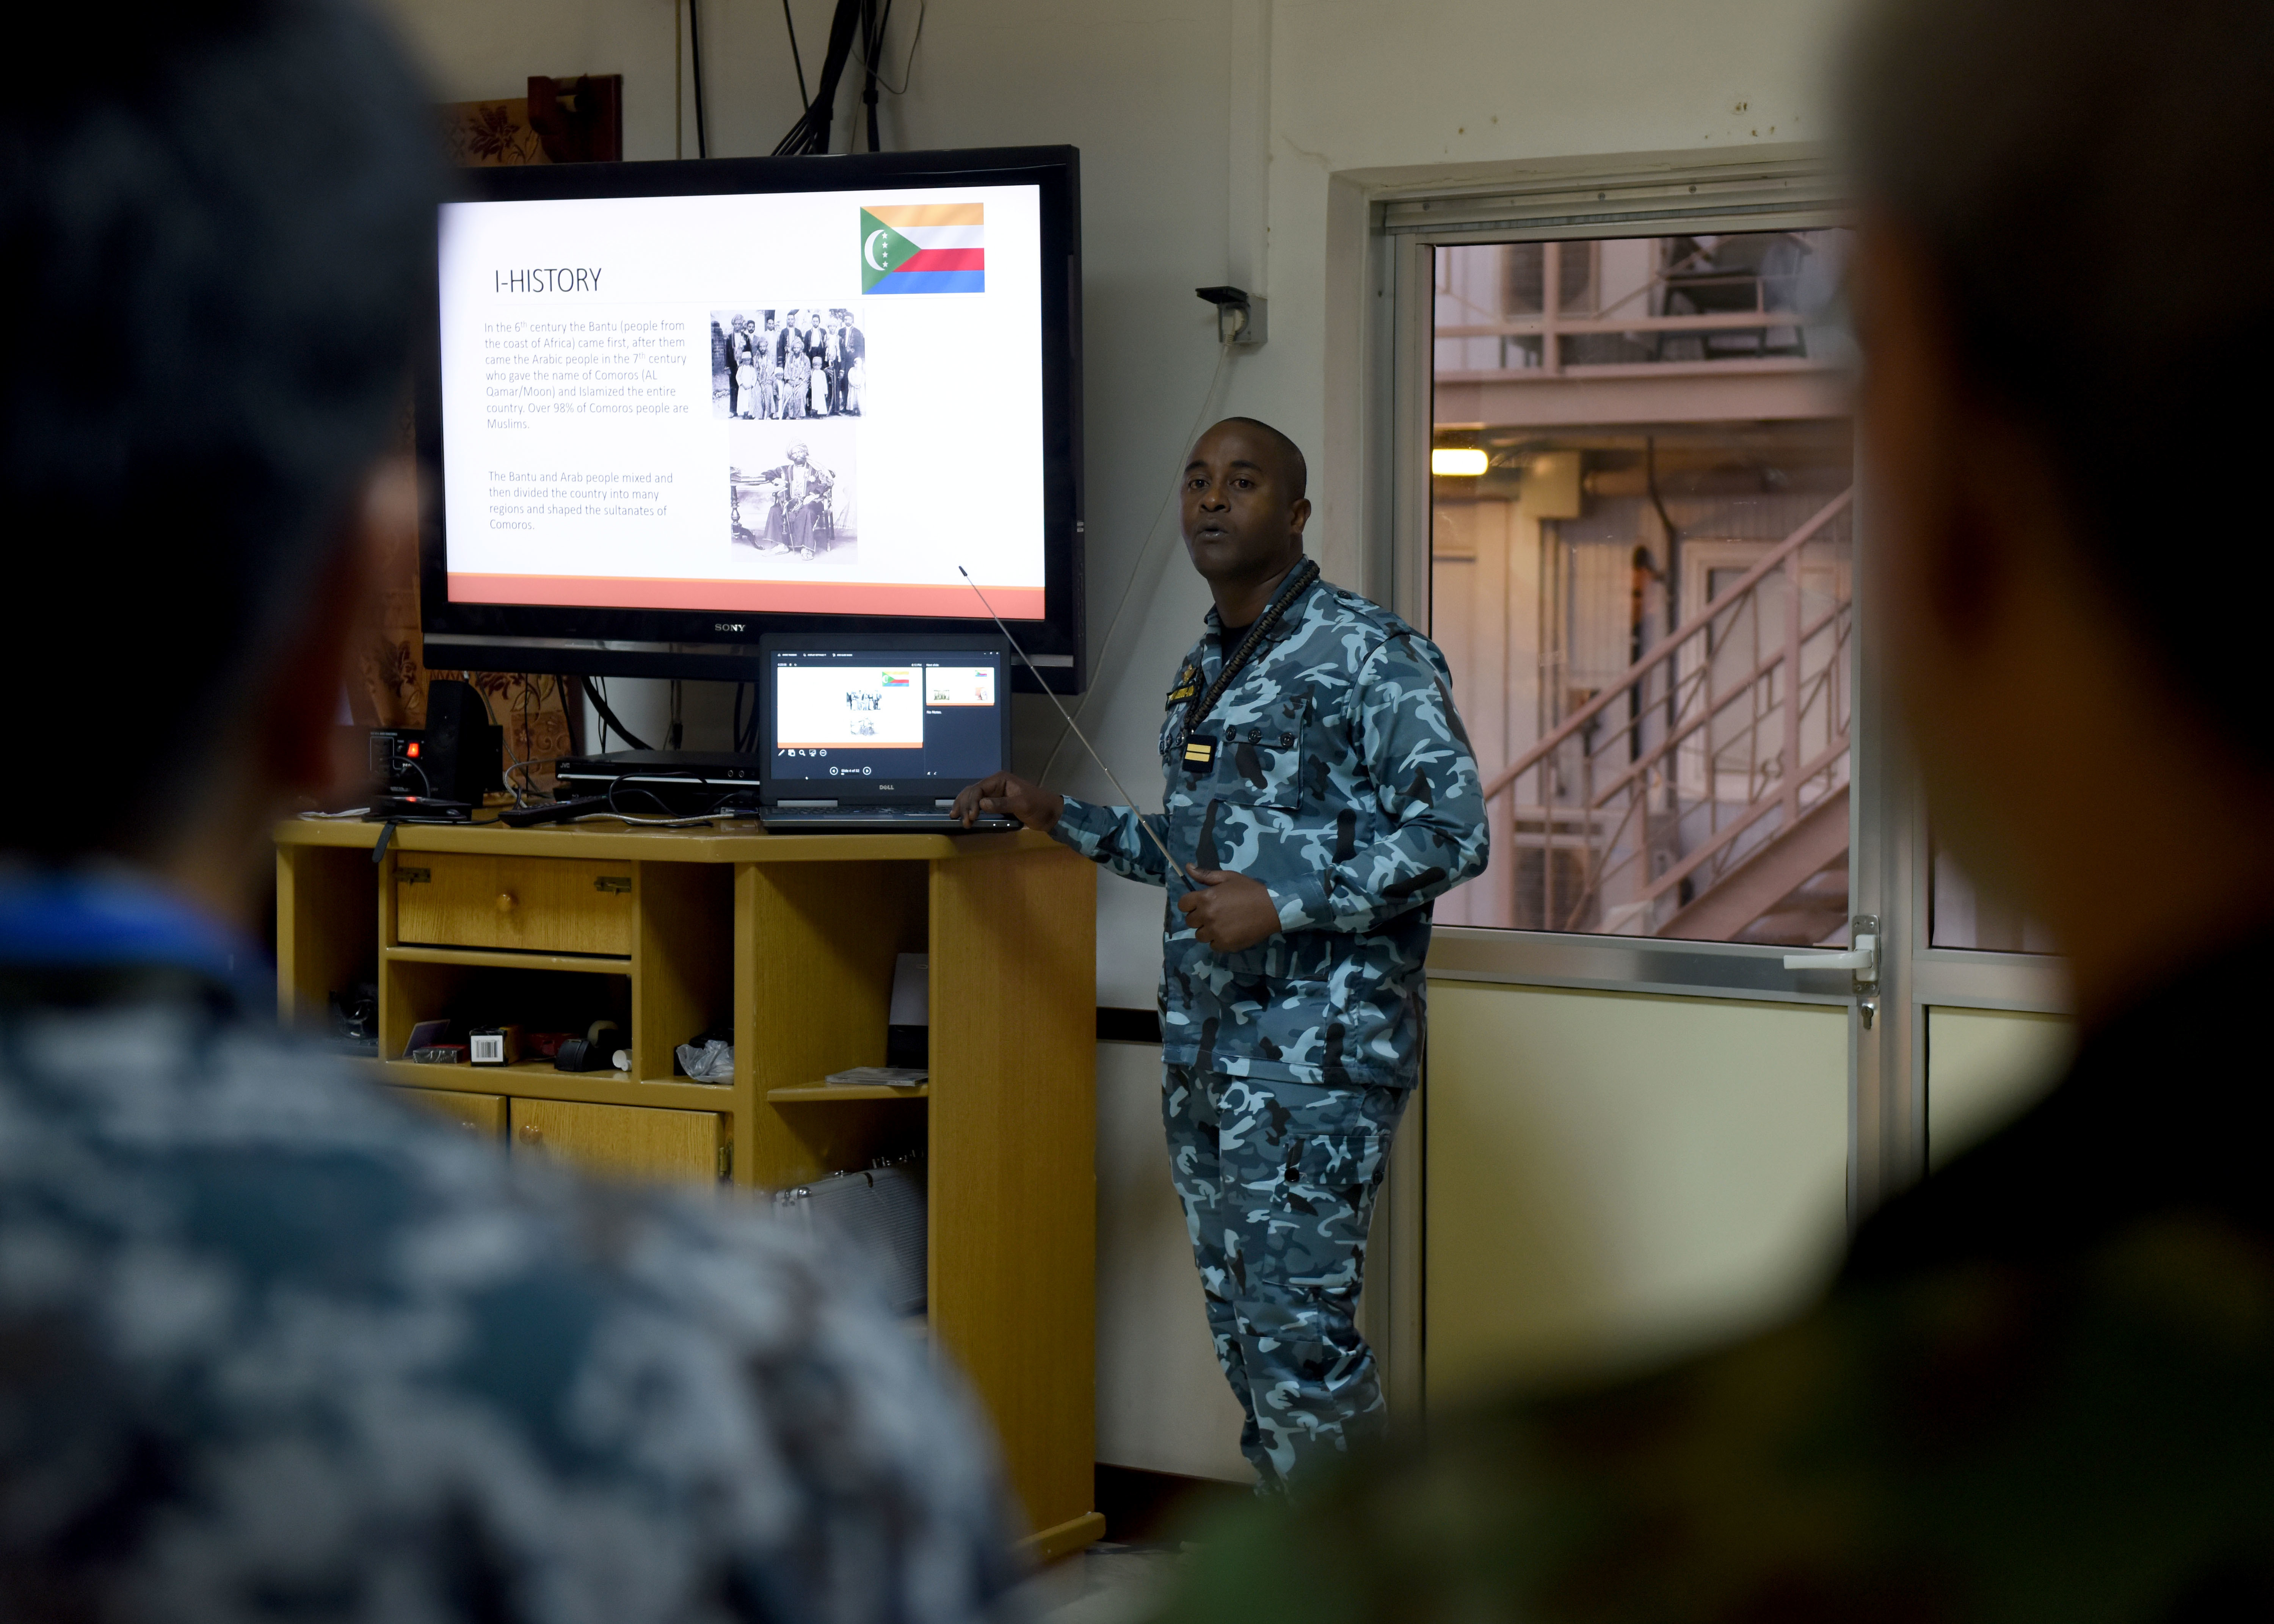 Comoros army Lt. Ali Abdoul-Kader, a foreign liaison officer for Combined Joint Task Force-Horn of Africa (CJTF-HOA), briefs multinational military partners about his country during a CJTF-HOA cultural exchange event at Camp Lemonnier, Djibouti, April 24, 2019. CJTF-HOA holds monthly exchange events with multinational military partners affiliated with Camp Lemonnier to strengthen alliances and attract new partners in the combined joint military environment. (U.S. Air Force Photo by Staff Sgt. Franklin R. Ramos)